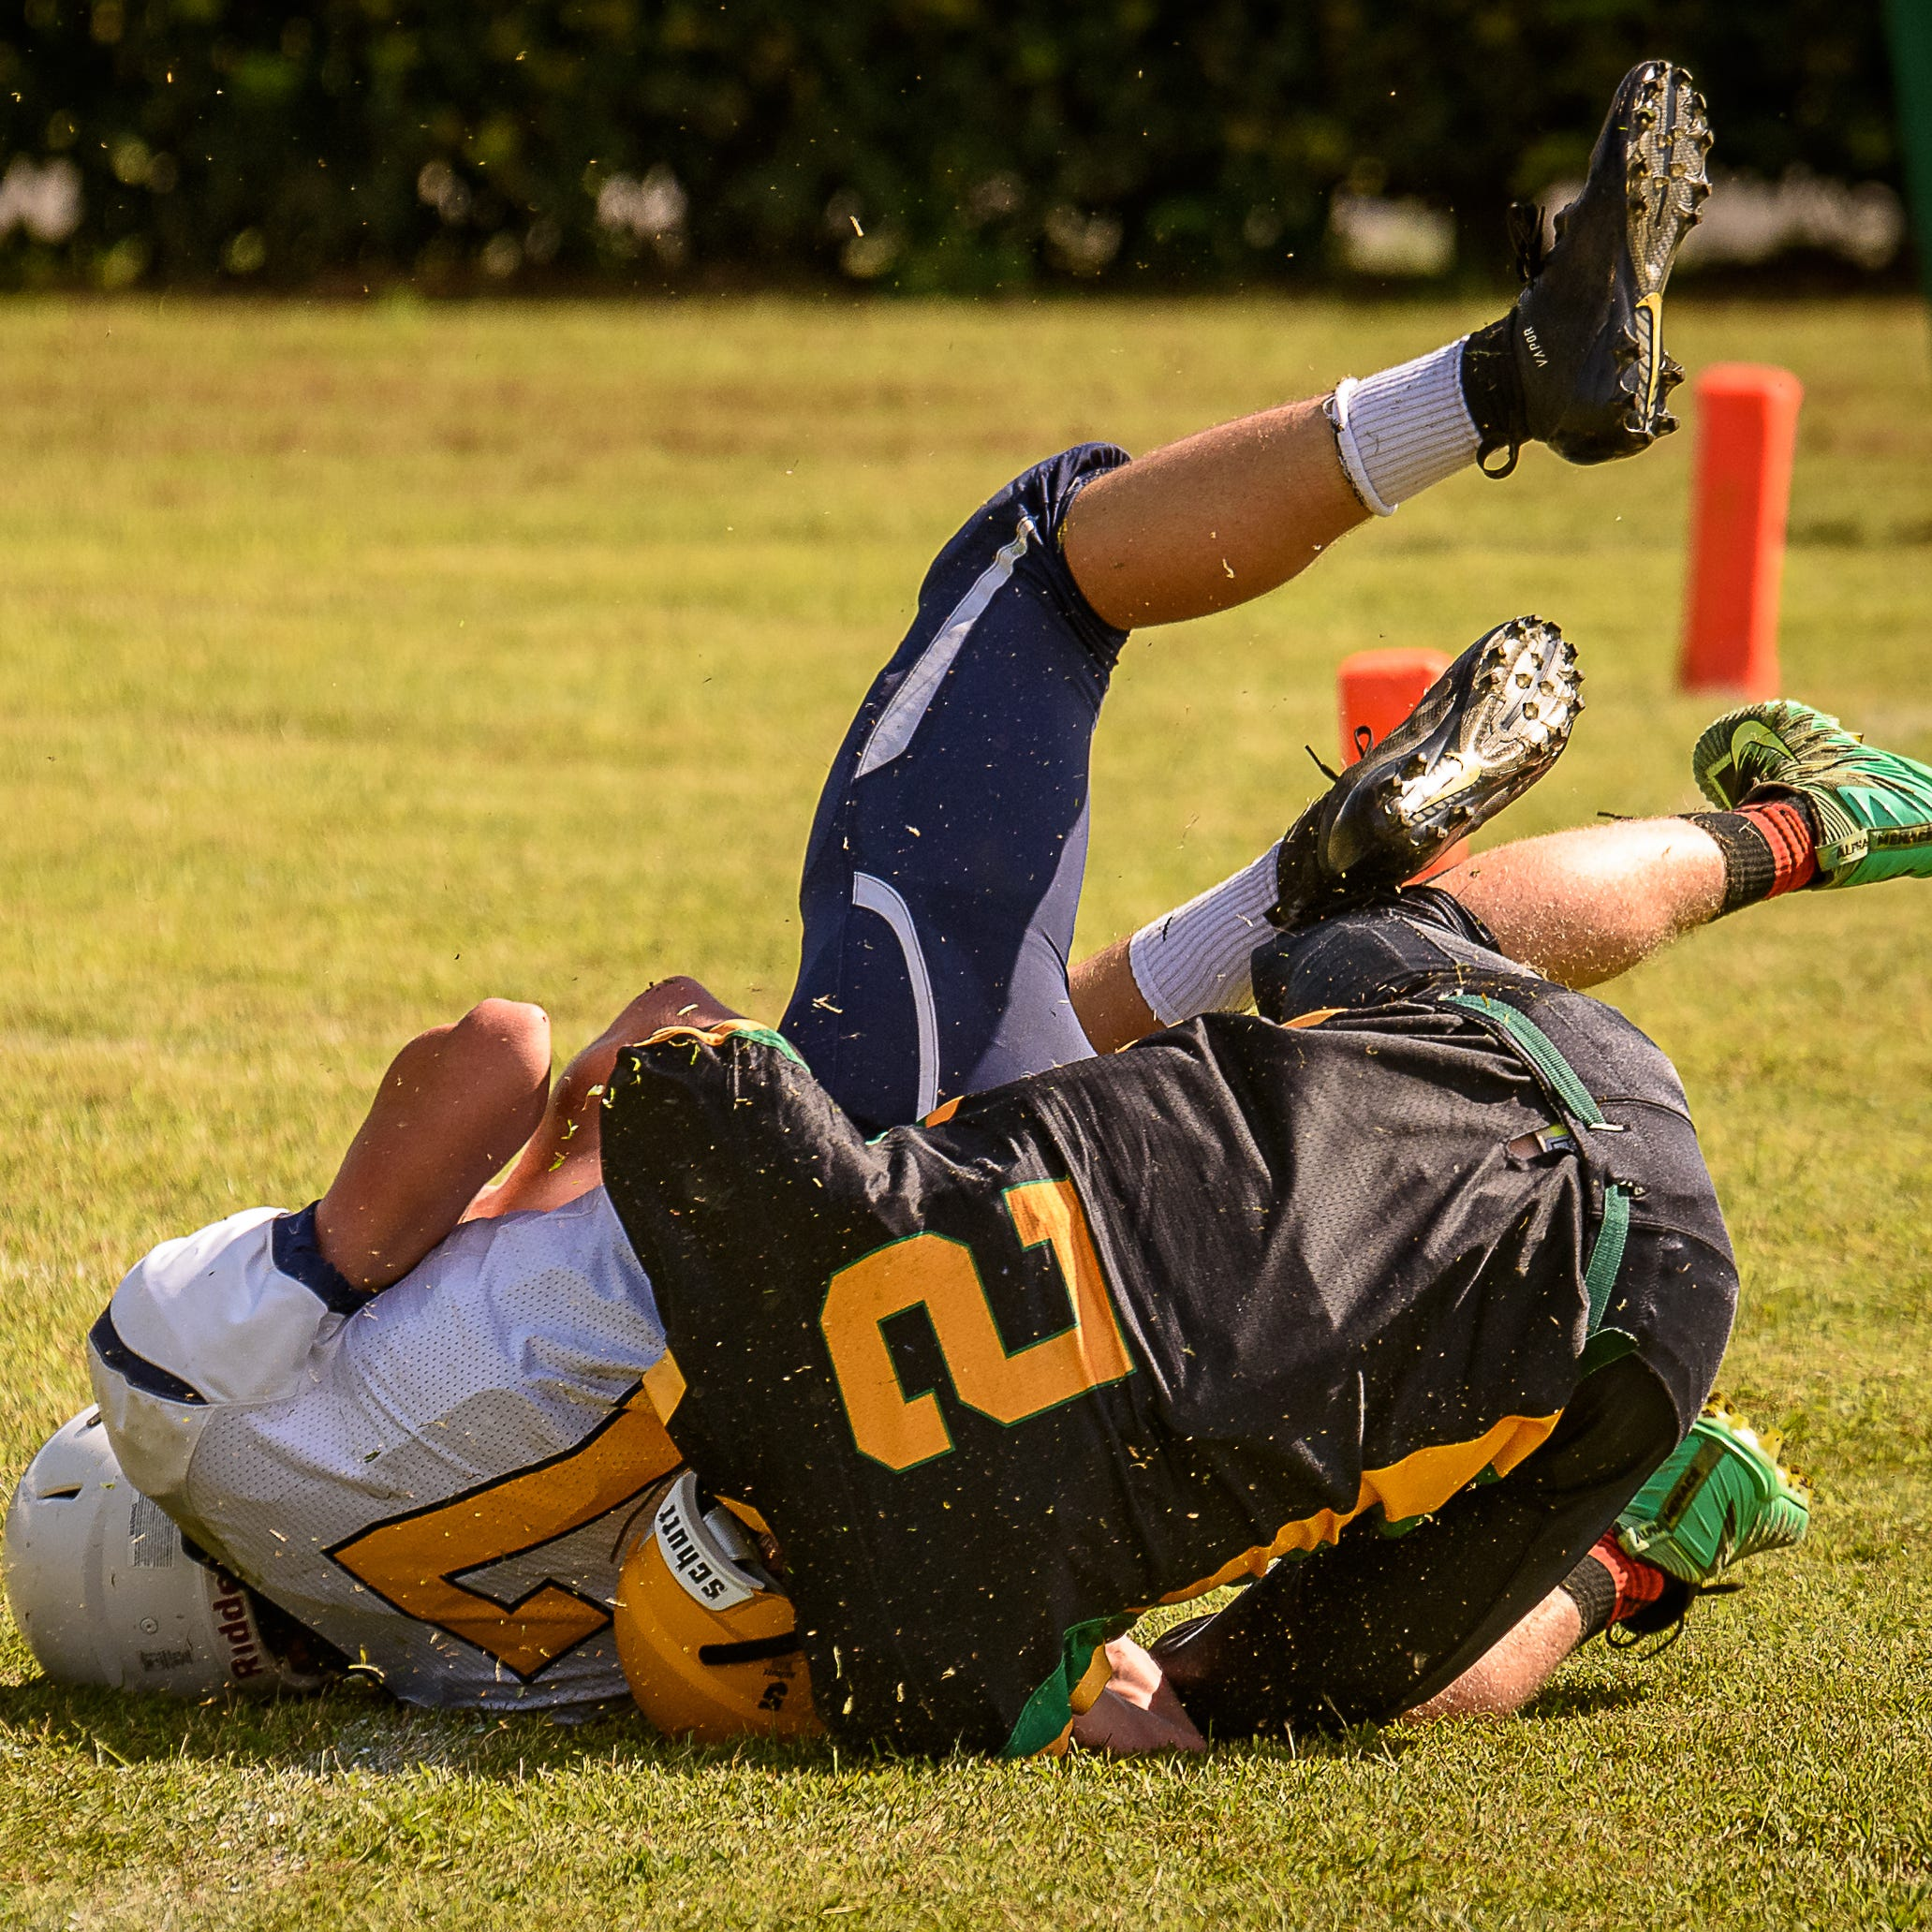 'I don't want to end up brain dead': How concussions affect football in Delmarva